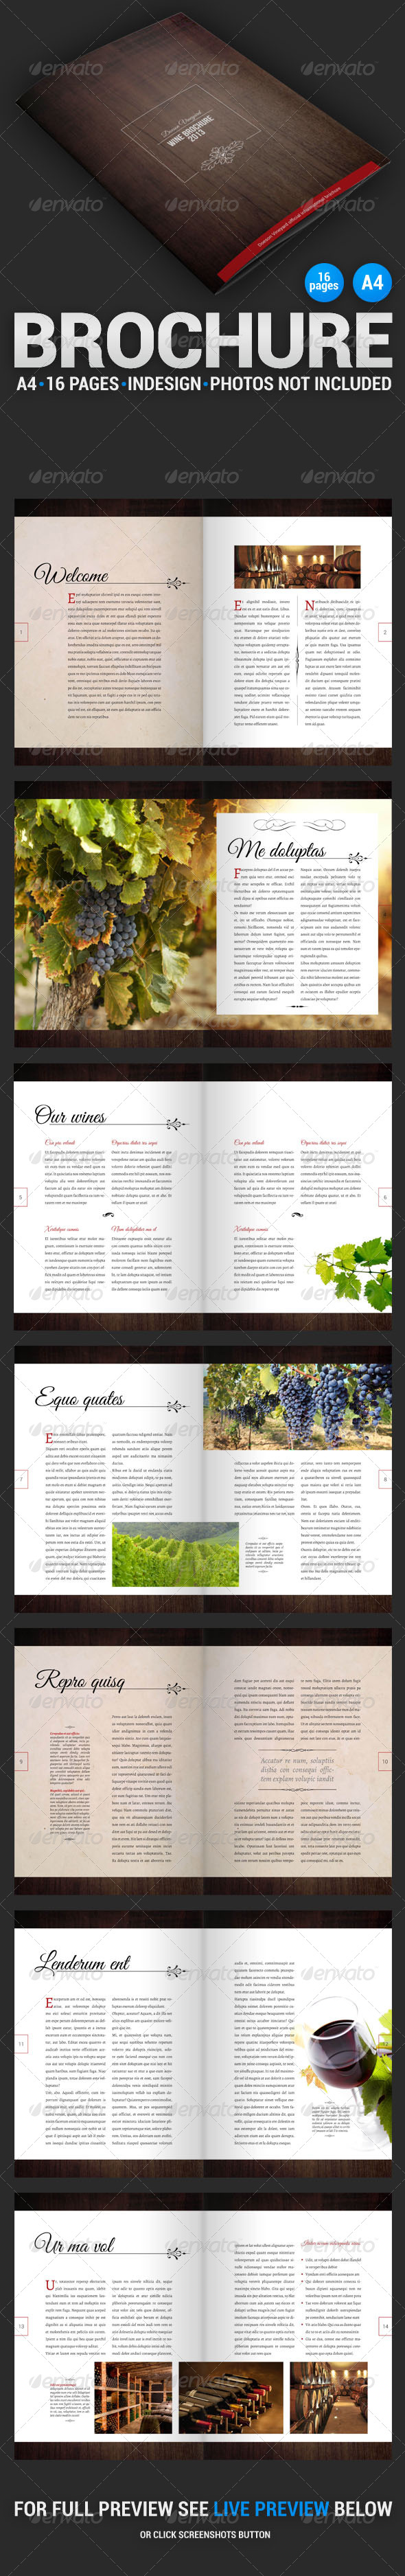 GraphicRiver Wine Brochure 16 Pages 4383005